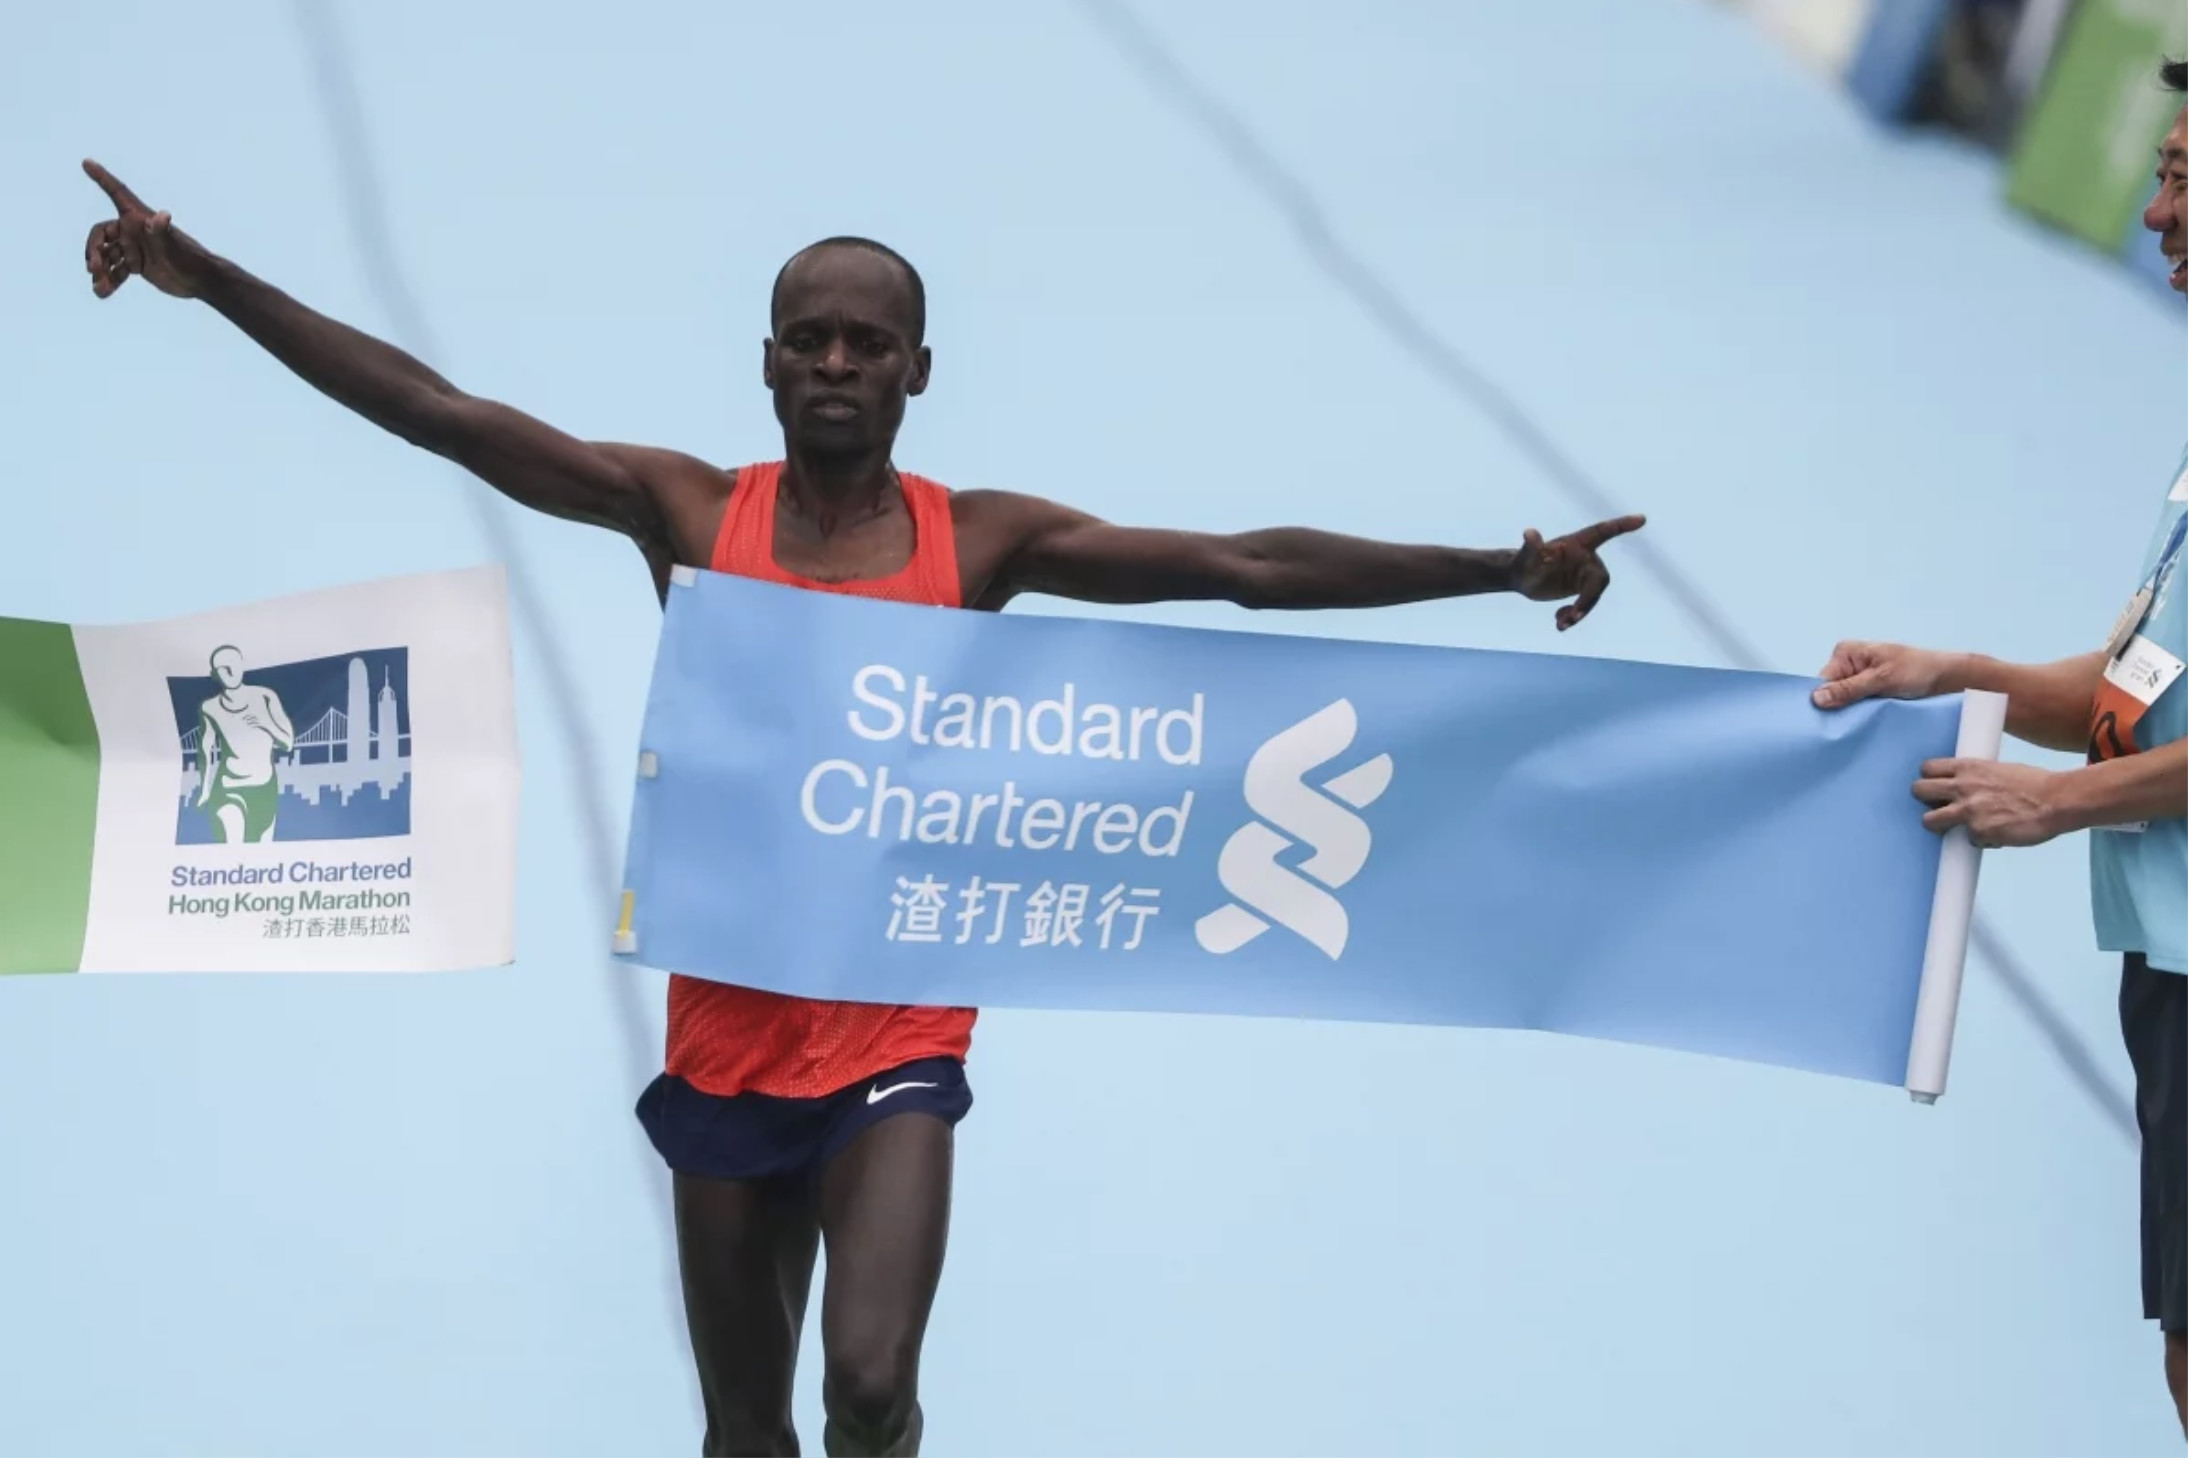 Kenyan Barnabus Kiptum was so far ahead of his rivals that the runner-up thought he had won